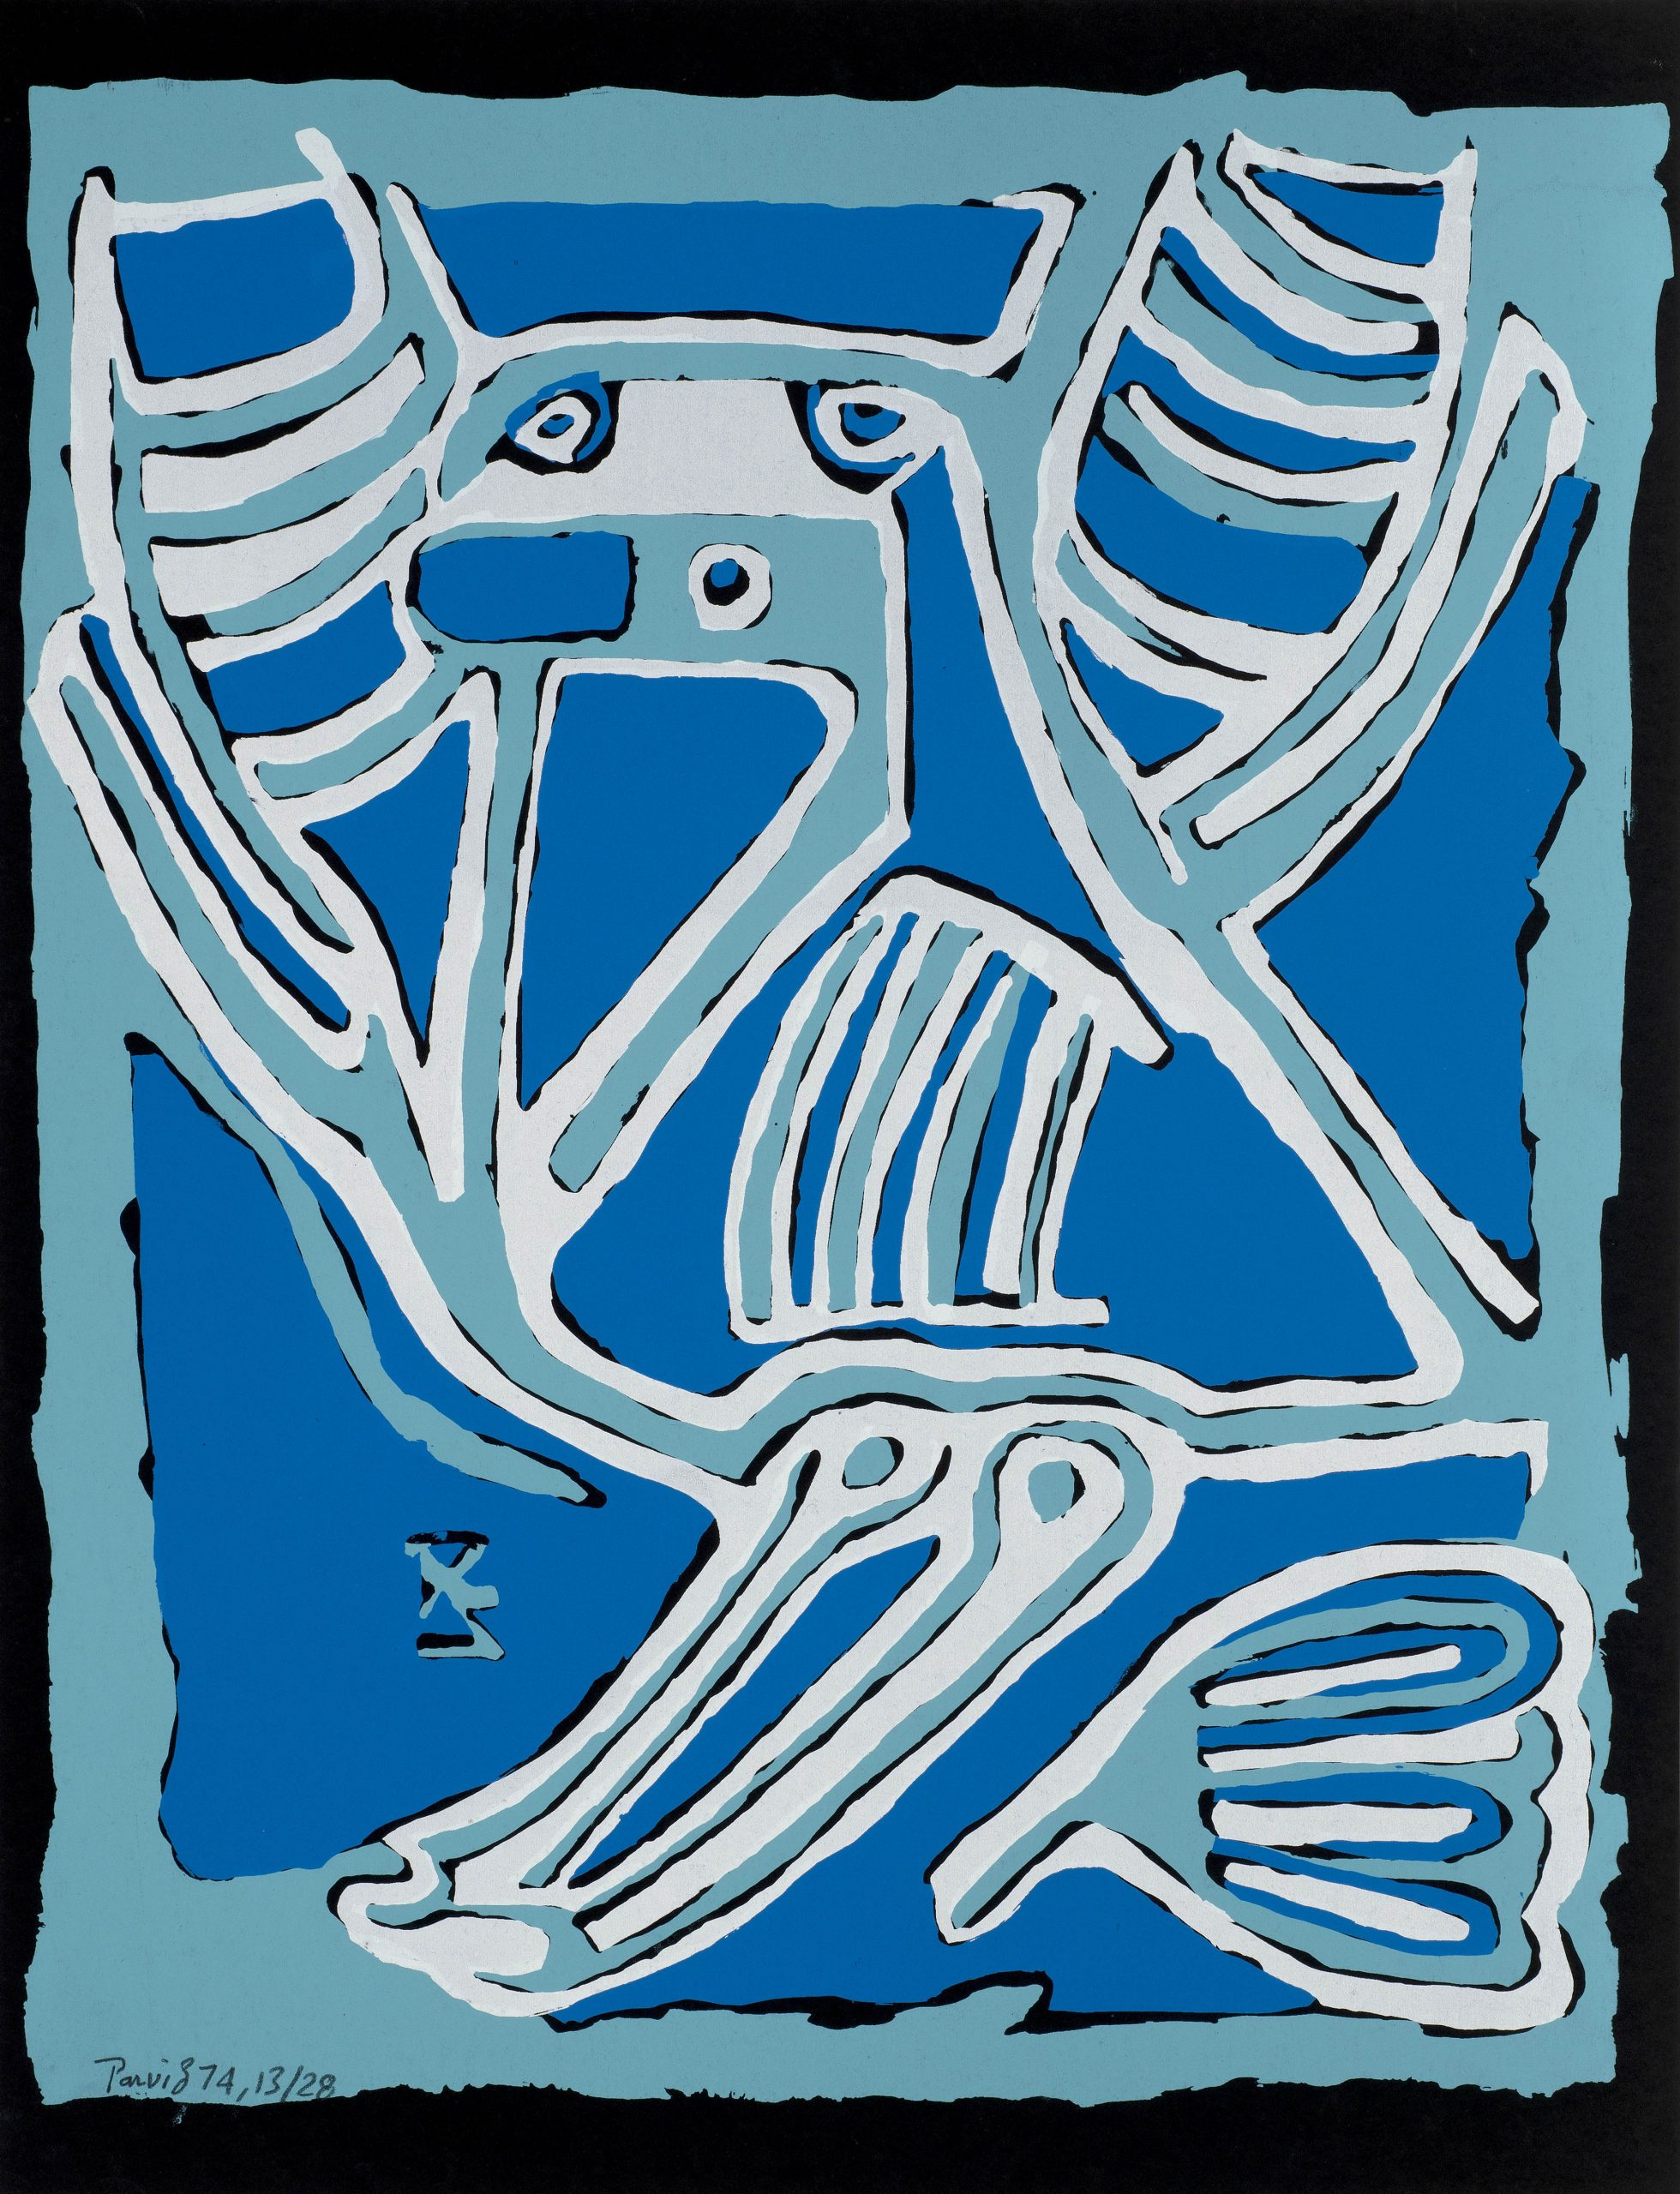 YOUTH OF SIMORGH, 1974   Screenprint on paper   Signed, dated and editioned 'Parviz 74' lower left   From an edition of 28   66.4 x 51 cm (26 1/8 x 20 1/8 in)